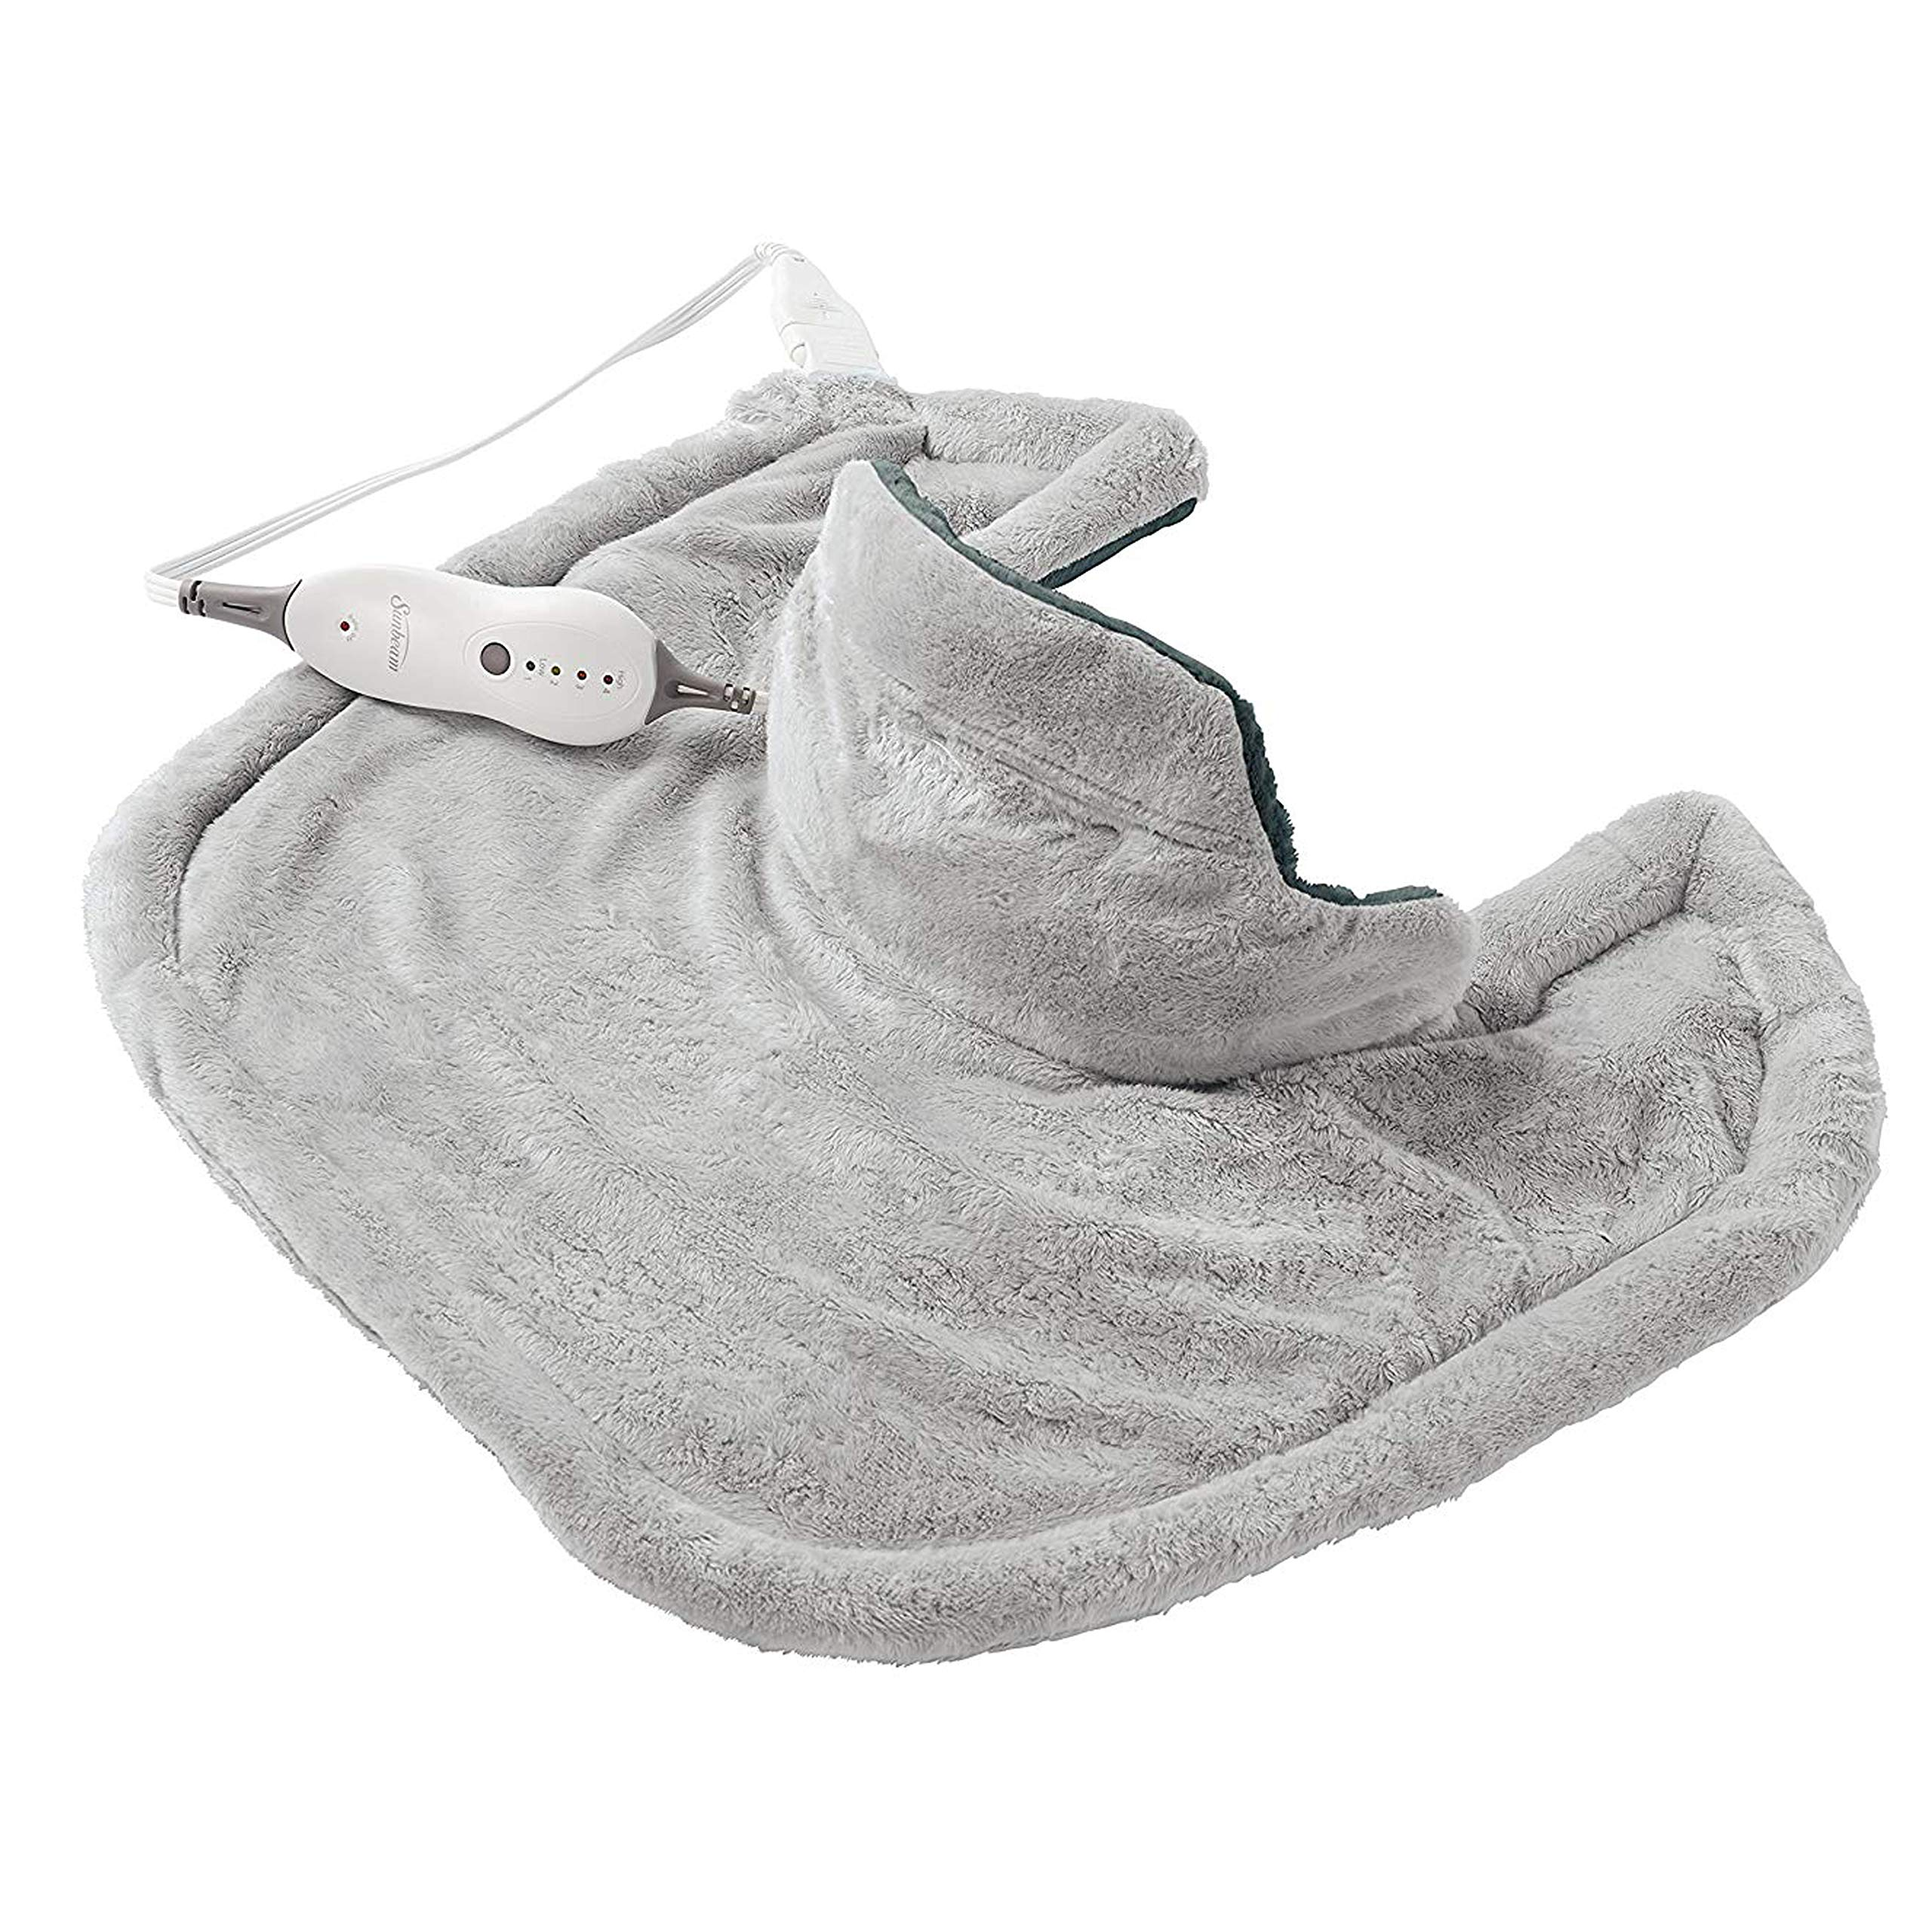 Sunbeam Renue Contouring Neck and Shoulder Heating Pad, 4 Heat Settings, 2-Hour Auto-Off, Machine Washable, 22'' x 19'', Grey